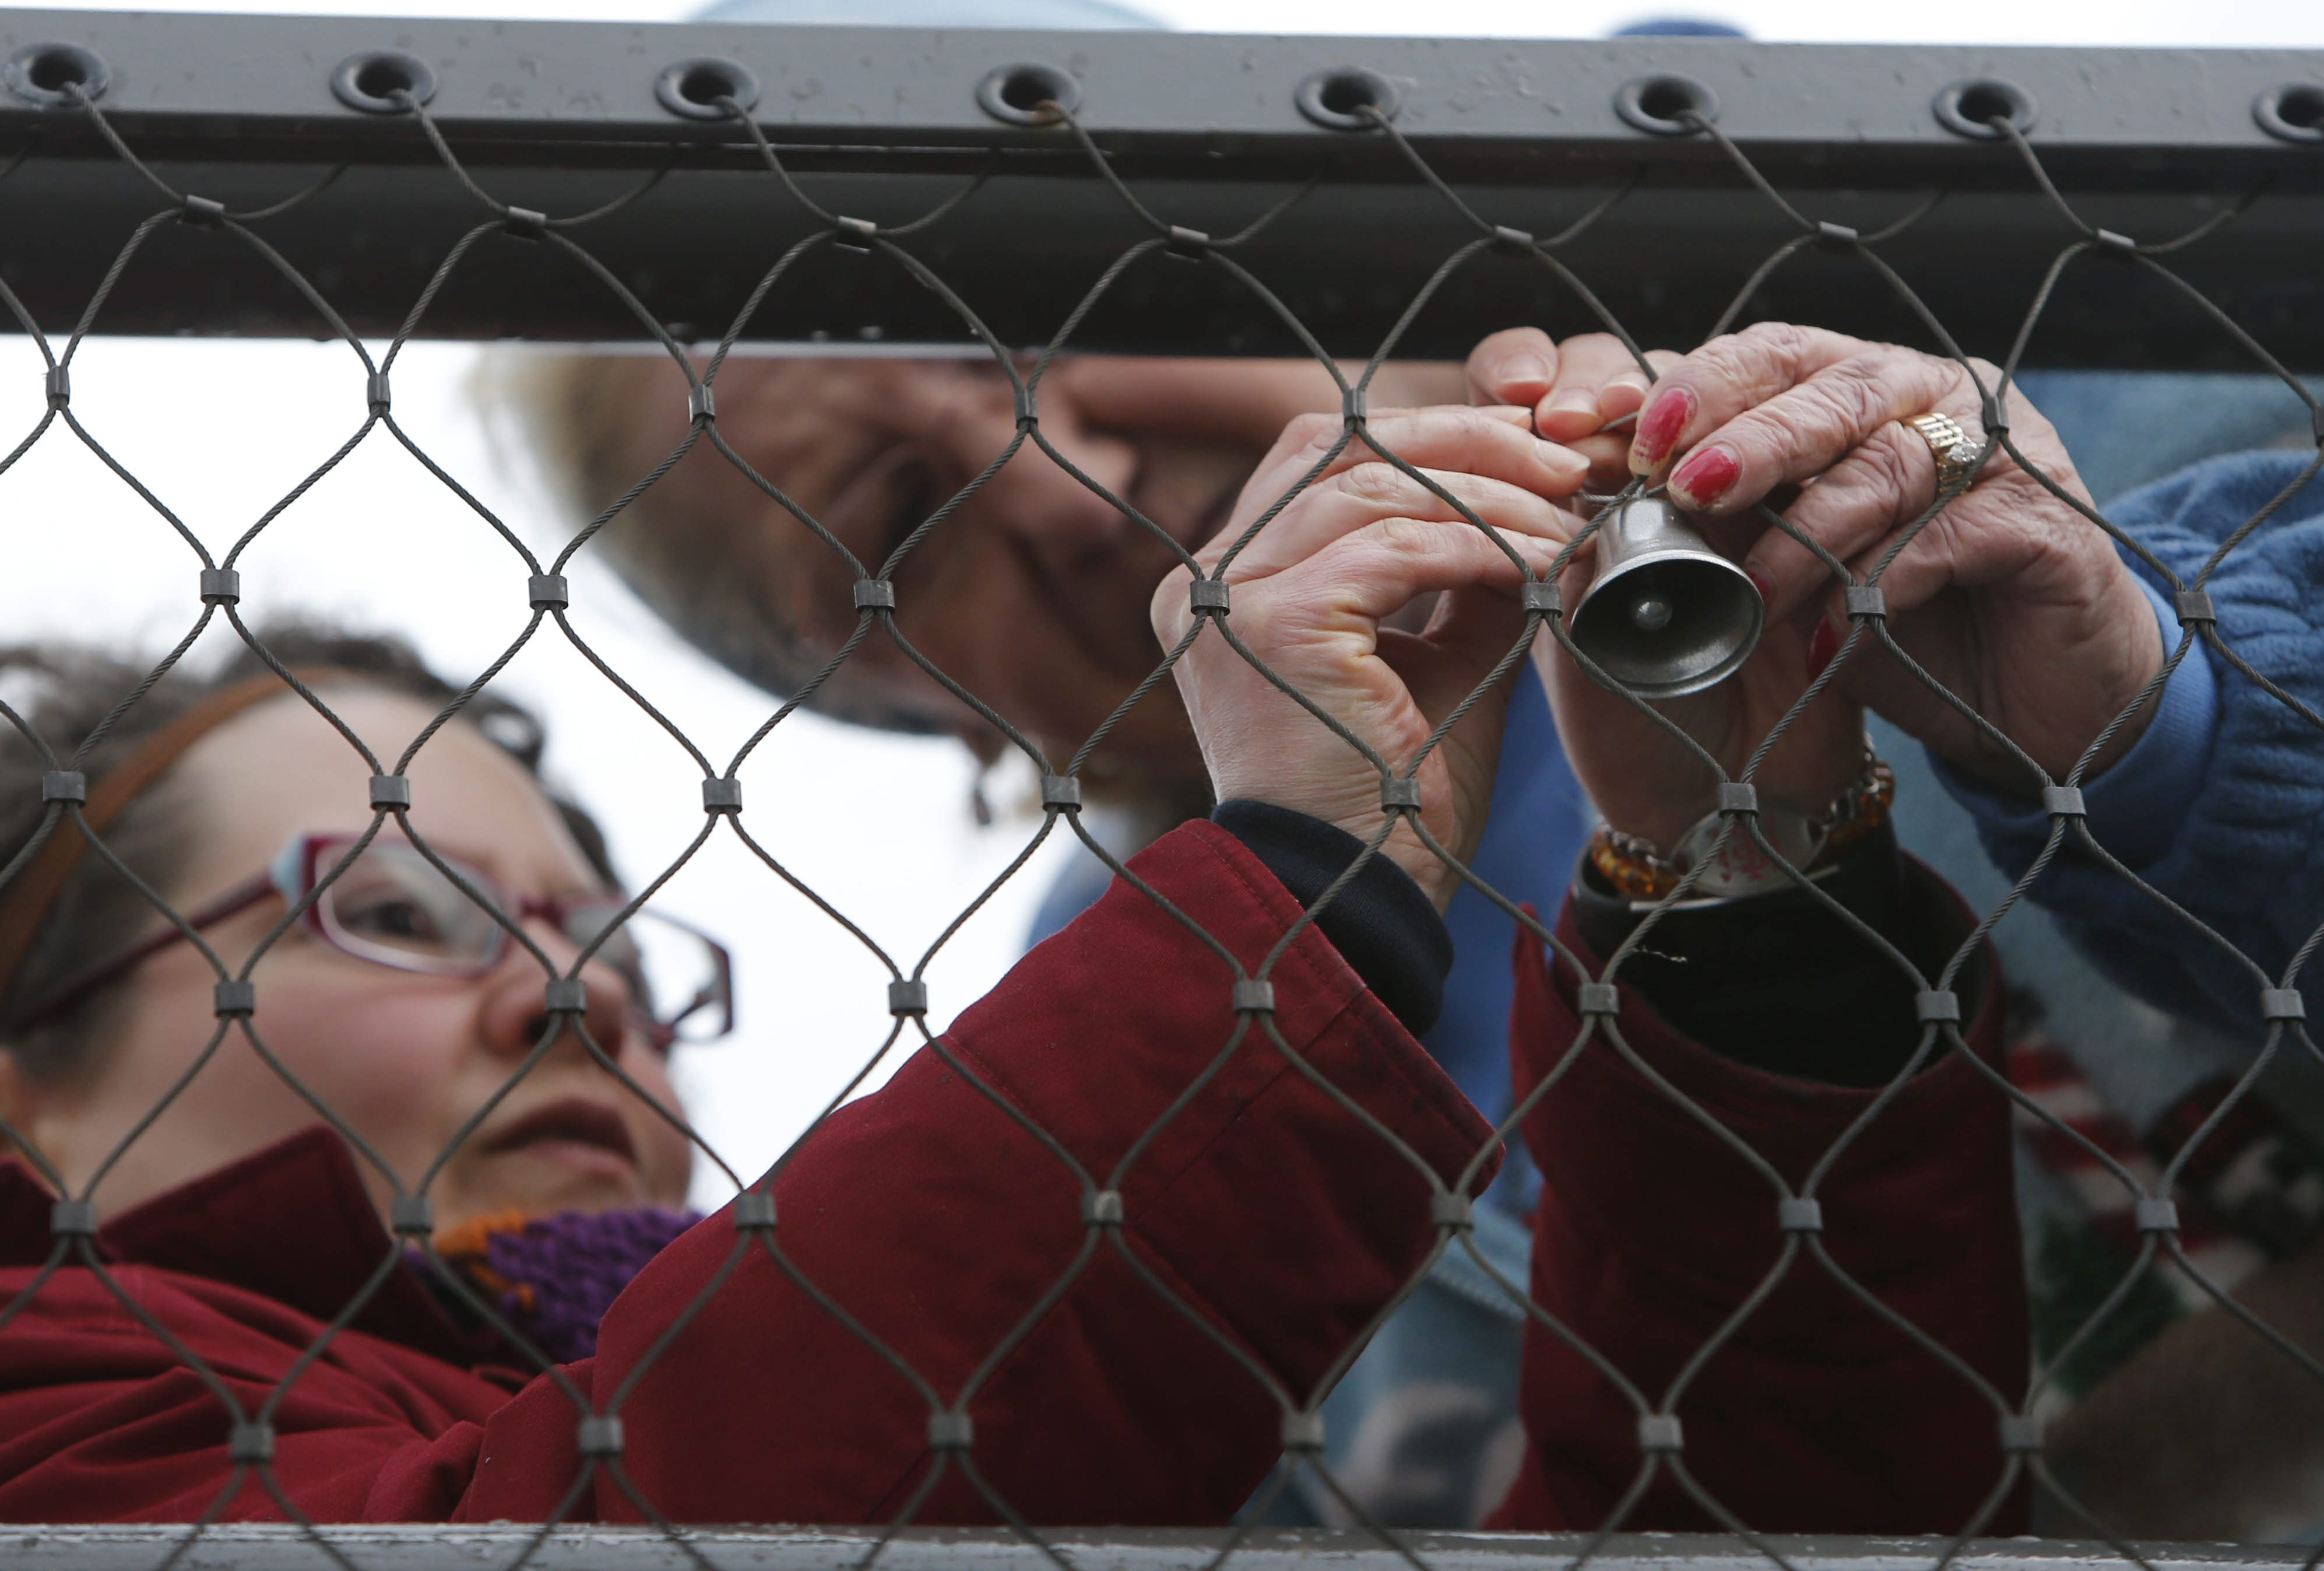 Cancer survivors Heather Fraccica of Depew, left, and Jean Hall of South Buffalo hang a bell on the Commercial Street Bridge at Canalside, after it was dedicated as the Roswell Park Cancer Institute Bridge of Hope, in March 2016. (Derek Gee/Buffalo News file photo)